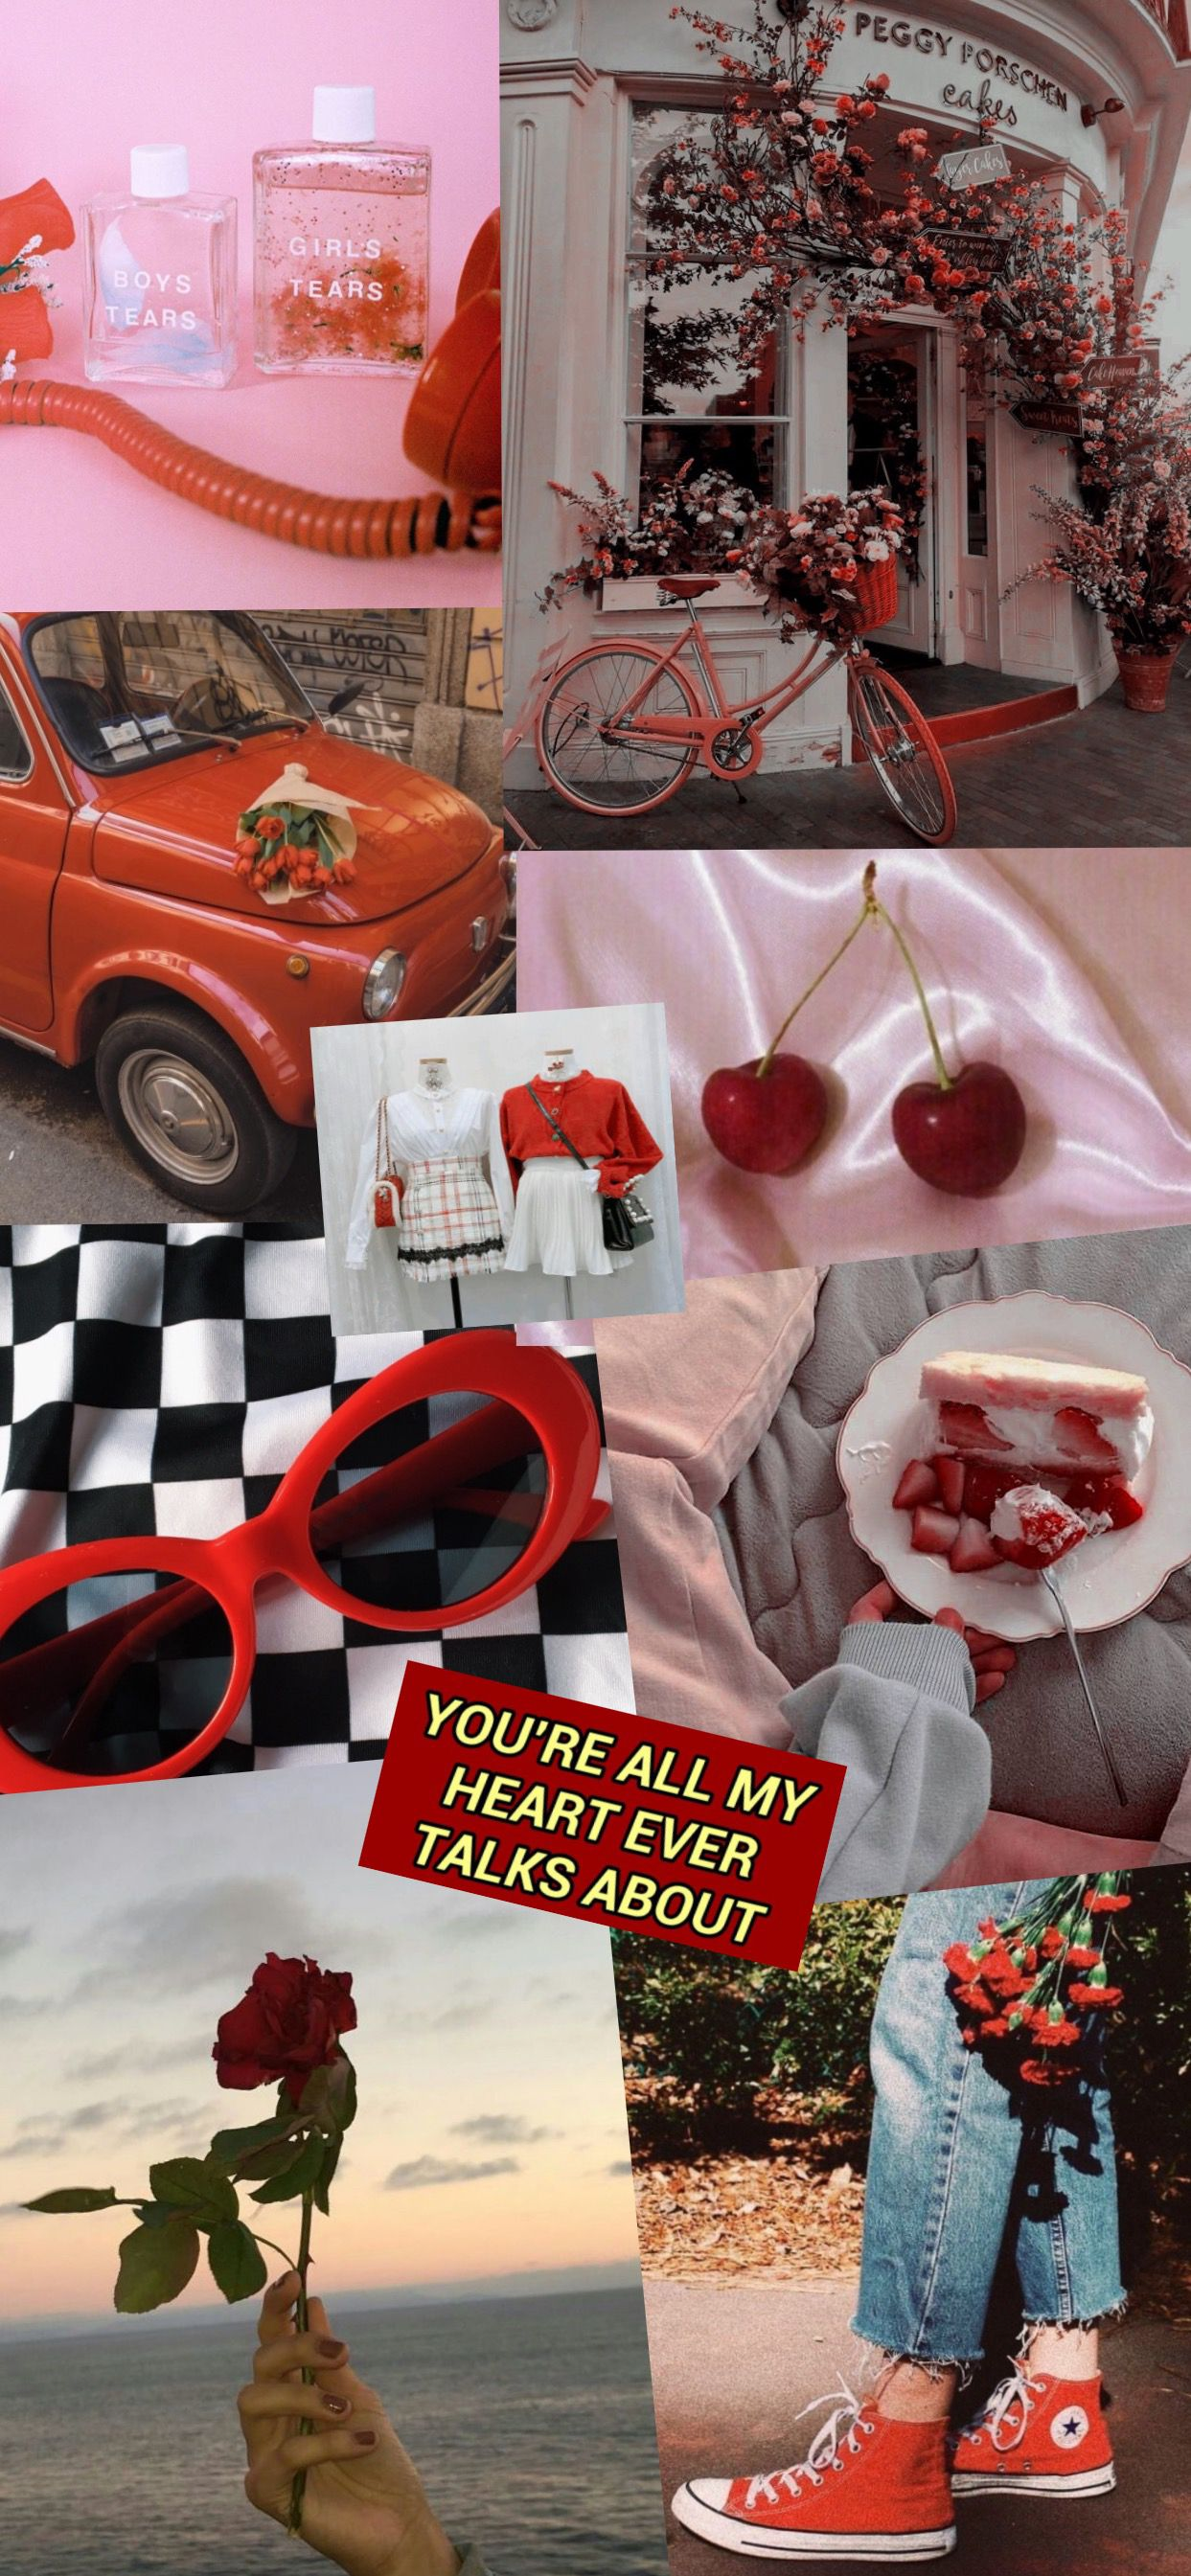 Red Grunge Aesthetic Collage Tumblr Wallpaper Cute Artsy